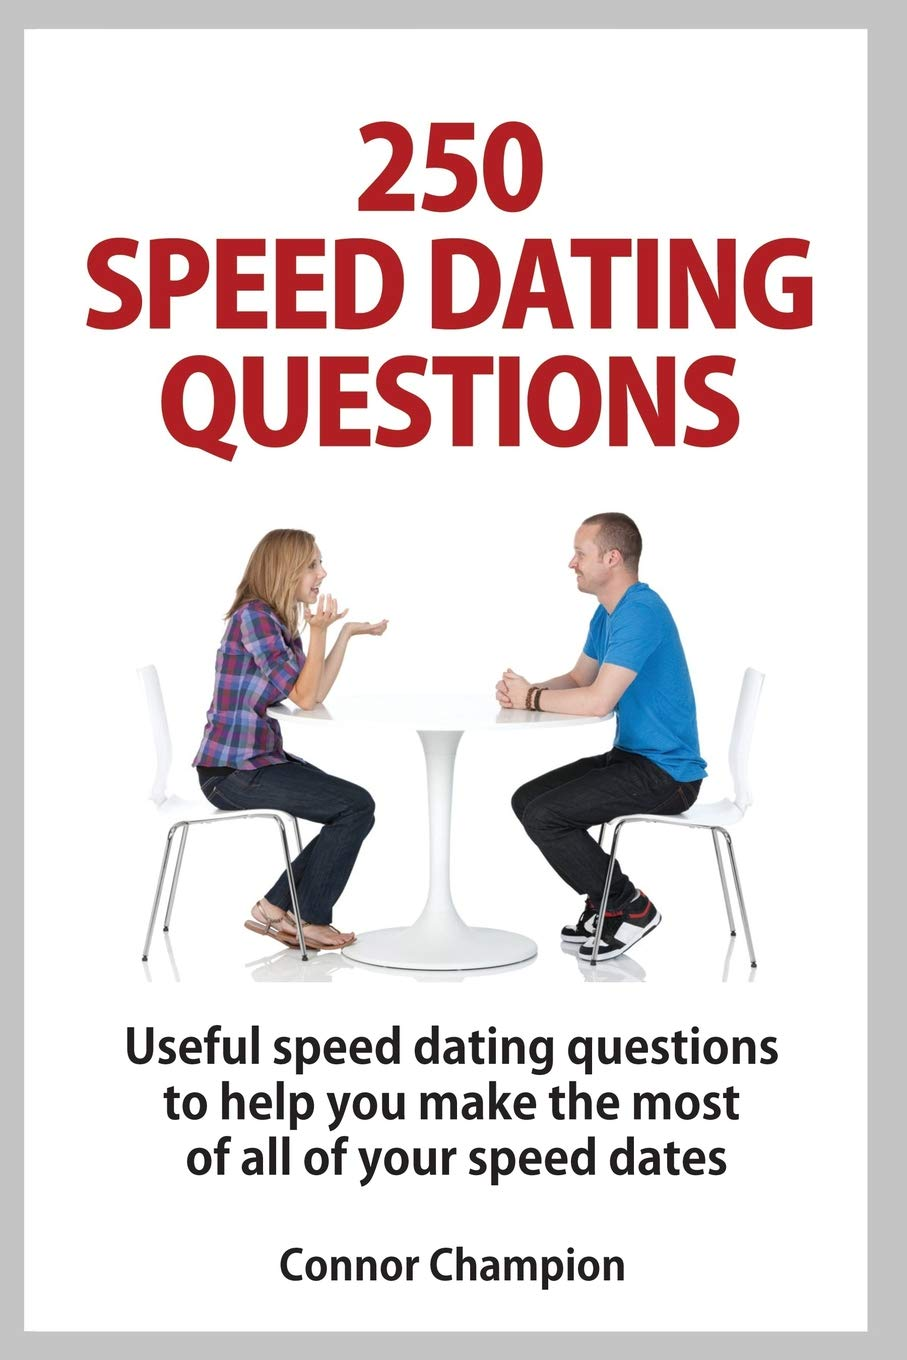 Speed dating guide